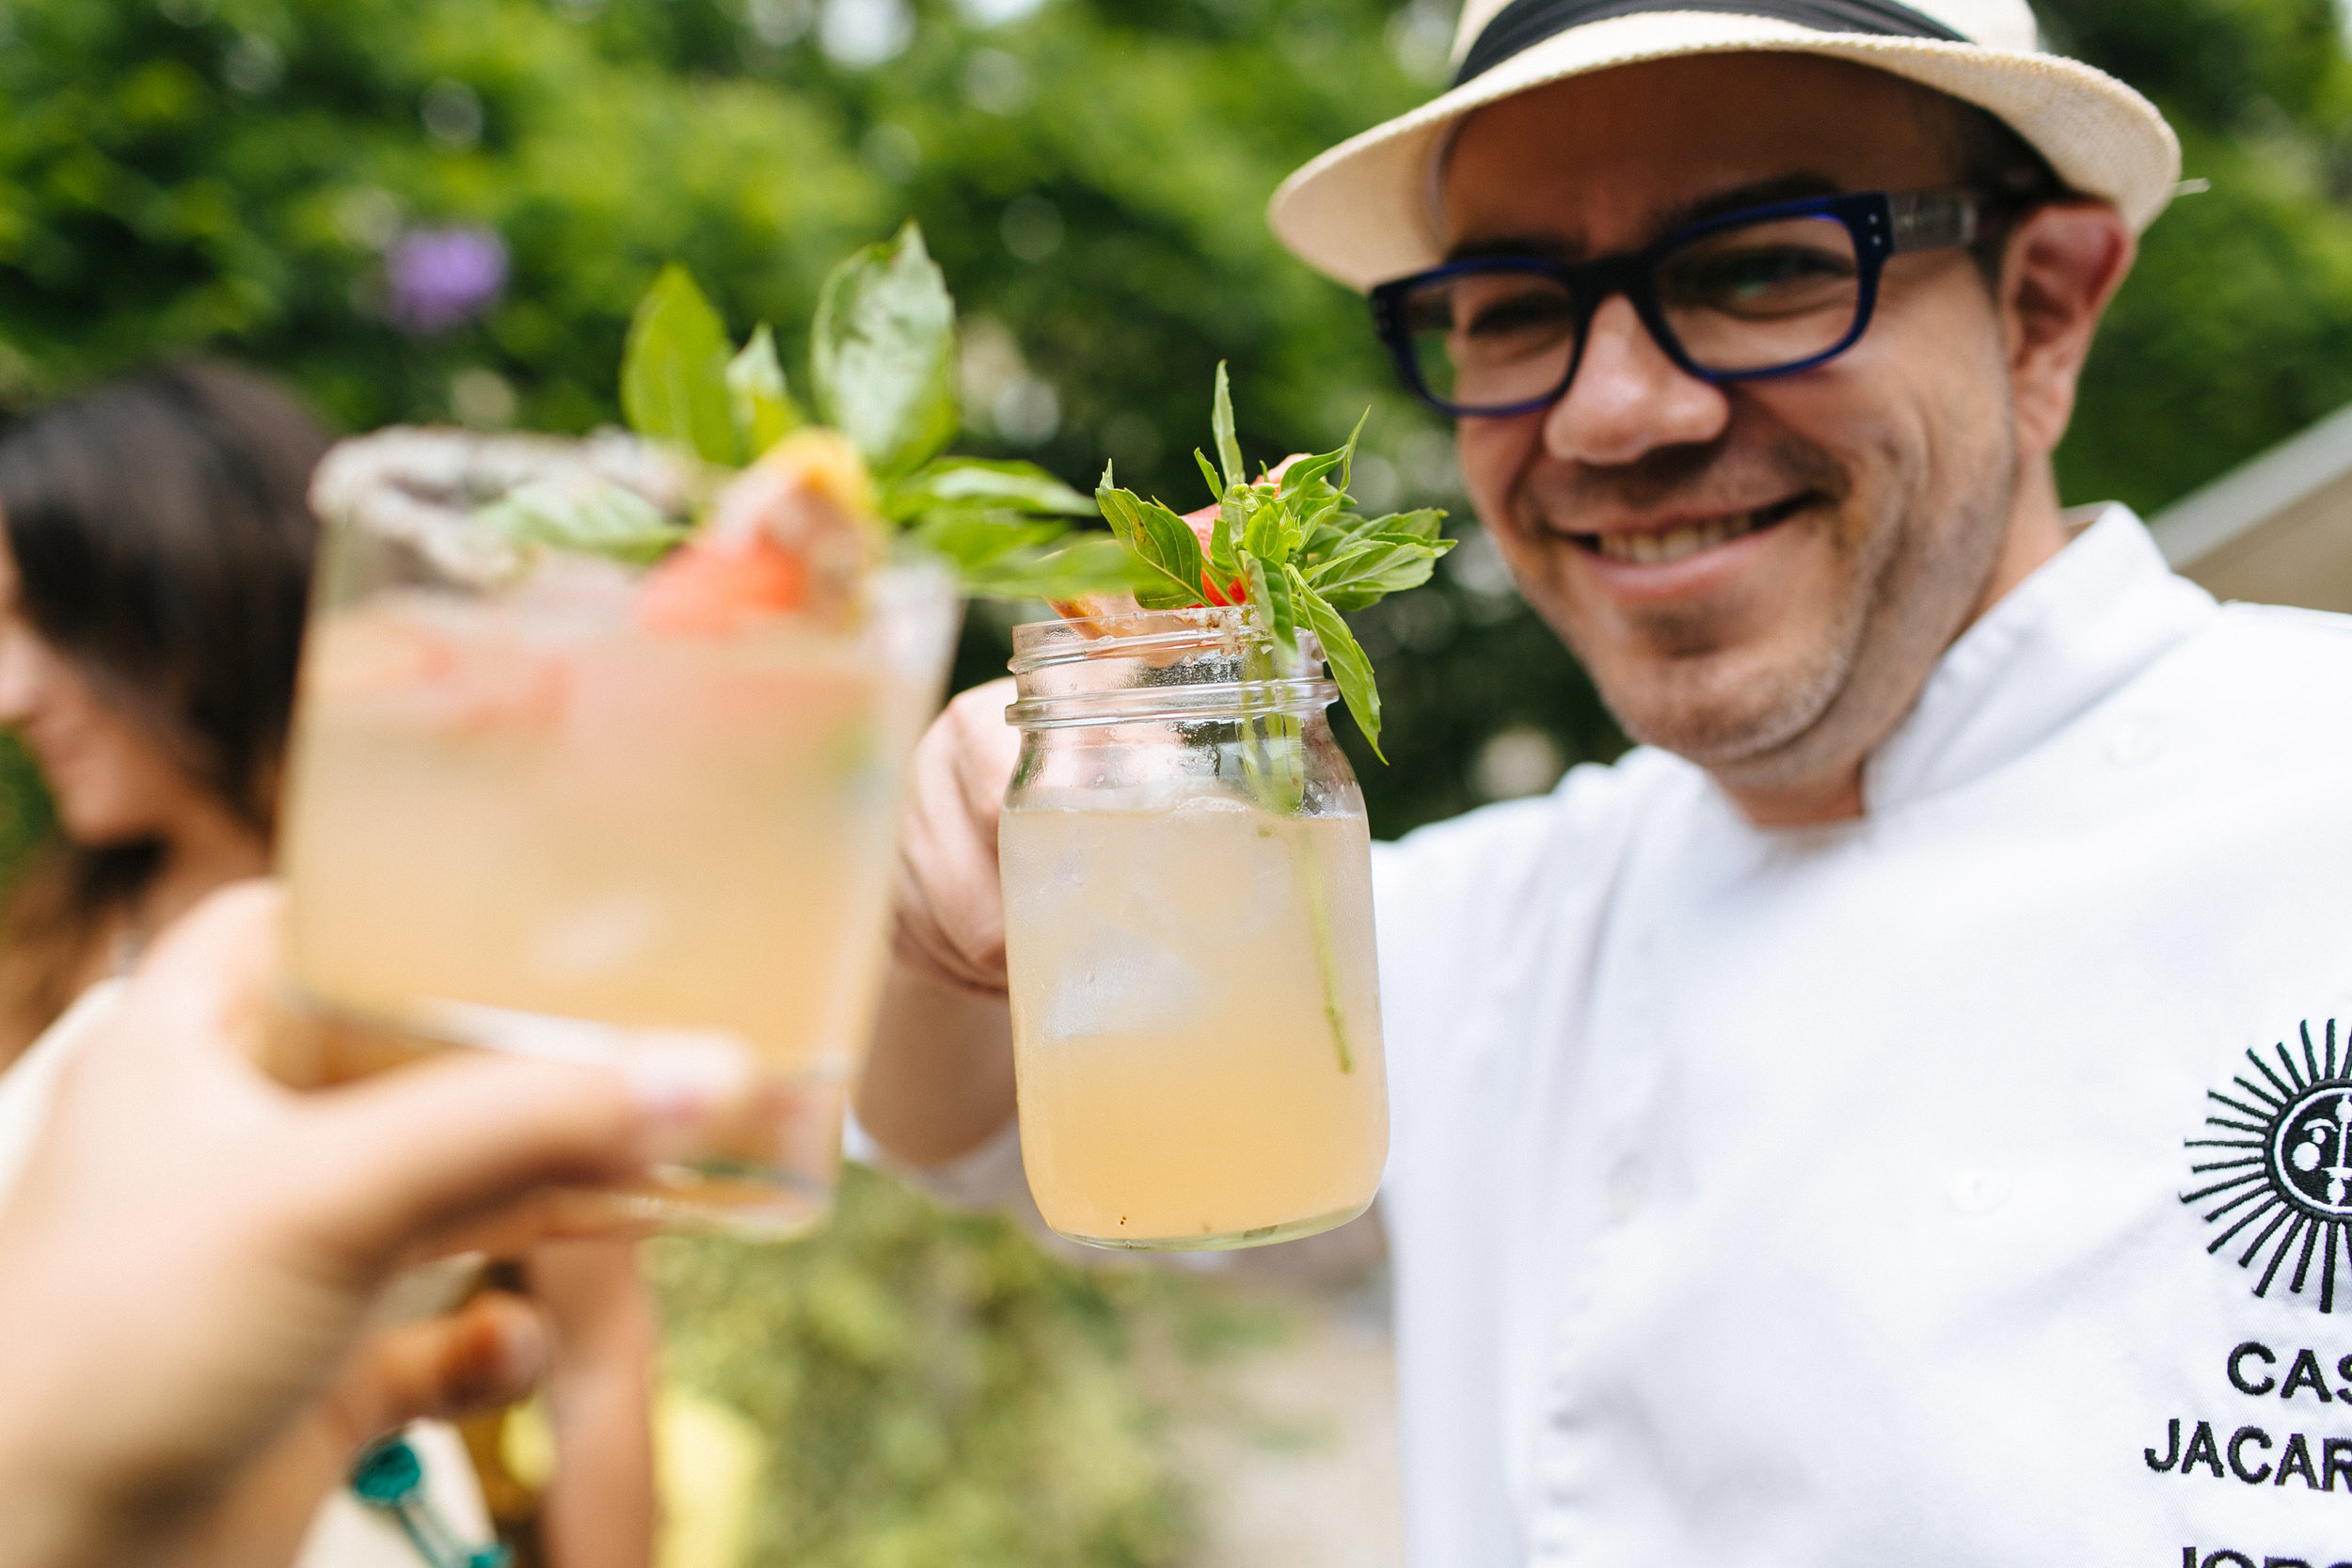 Copy of drinking cocktails with Altos tequila